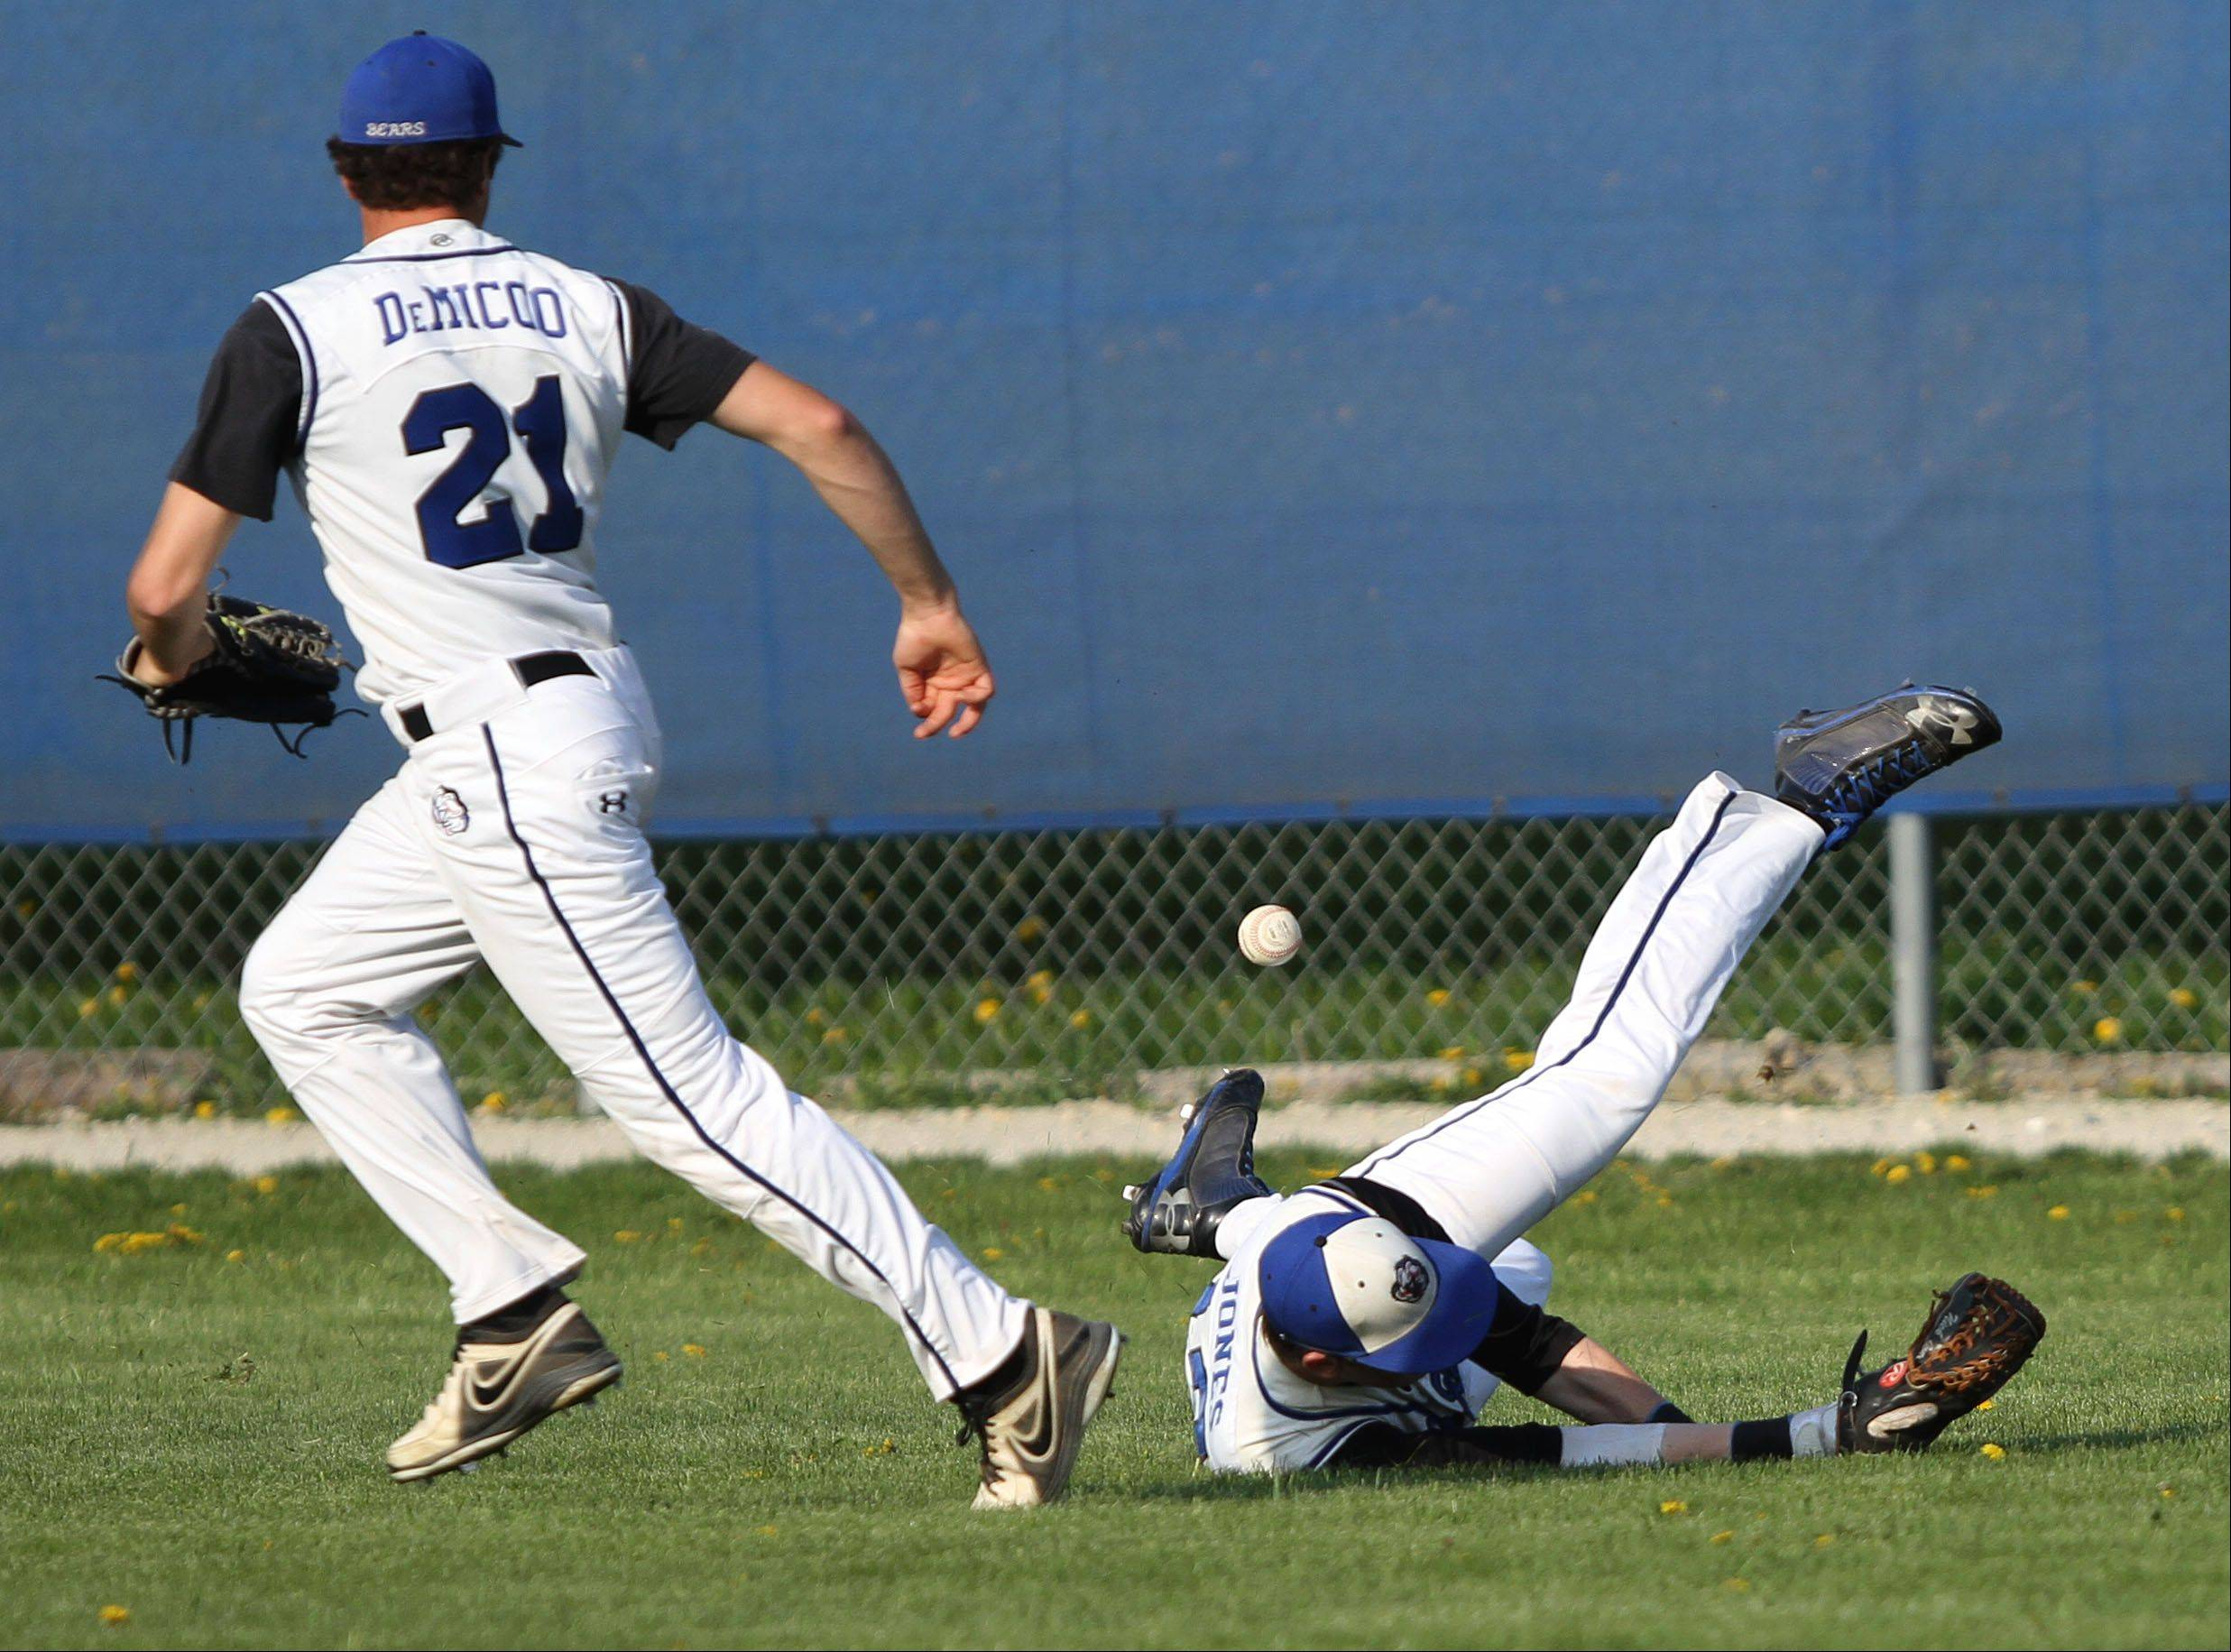 Lake Zurich's Nick Jones, right, makes a diving attempt at a flyball as Dominic DeMicco tries to track down the ball against visiting Stevenson on Wednesday.